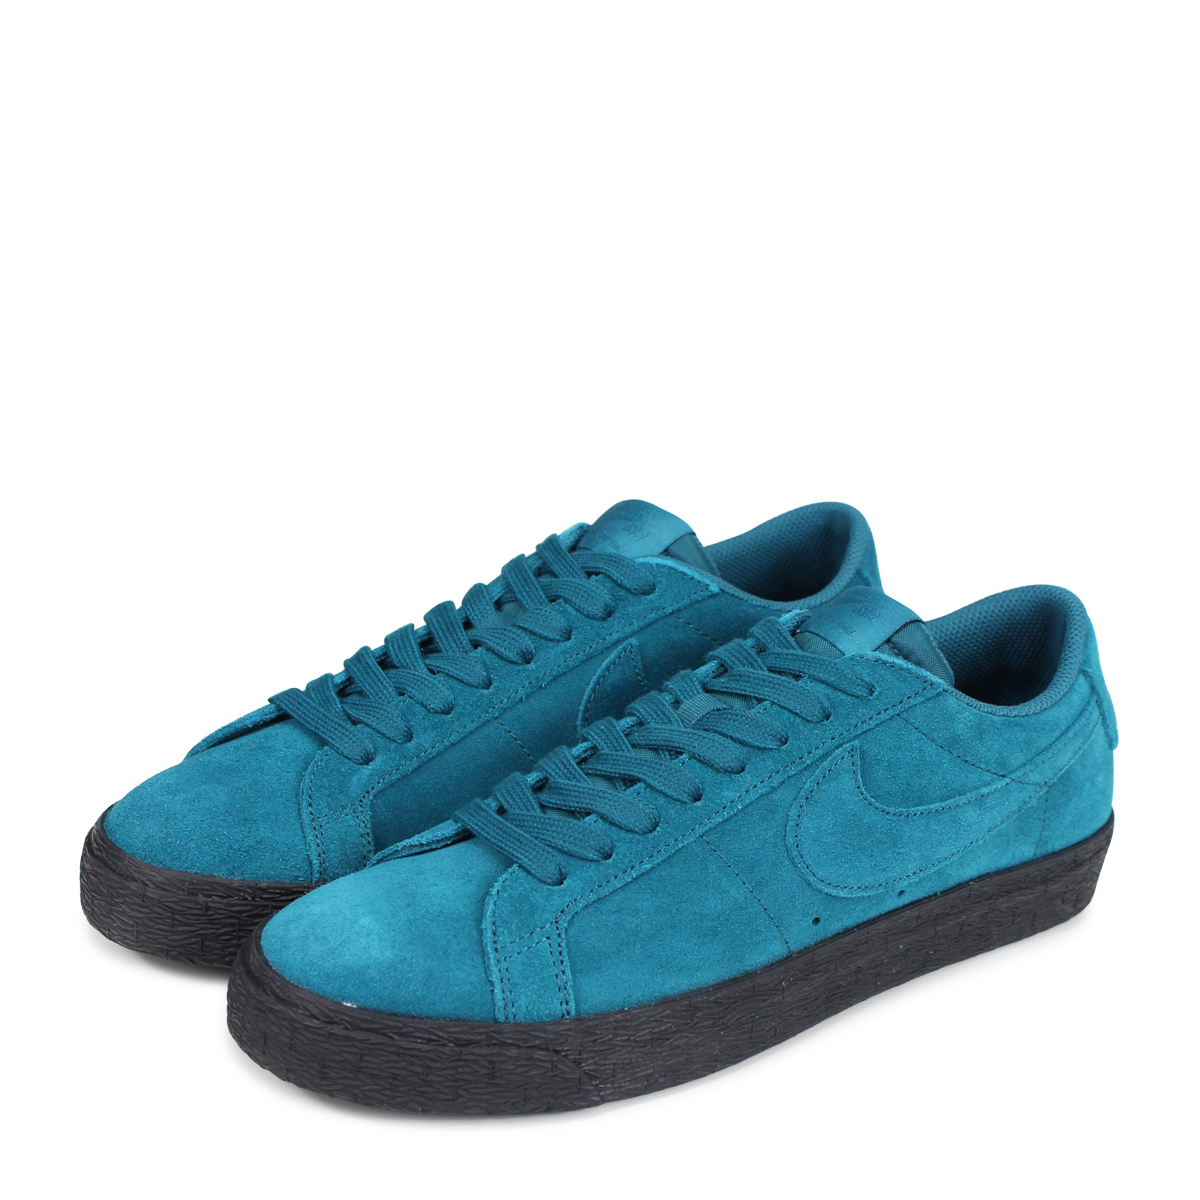 nouveau produit 94181 b9978 NIKE SB ZOOM BLAZER LOW Nike blazer low sneakers men 864,347-300 green  [load planned Shinnyu load in reservation product 8/3 containing] [187]